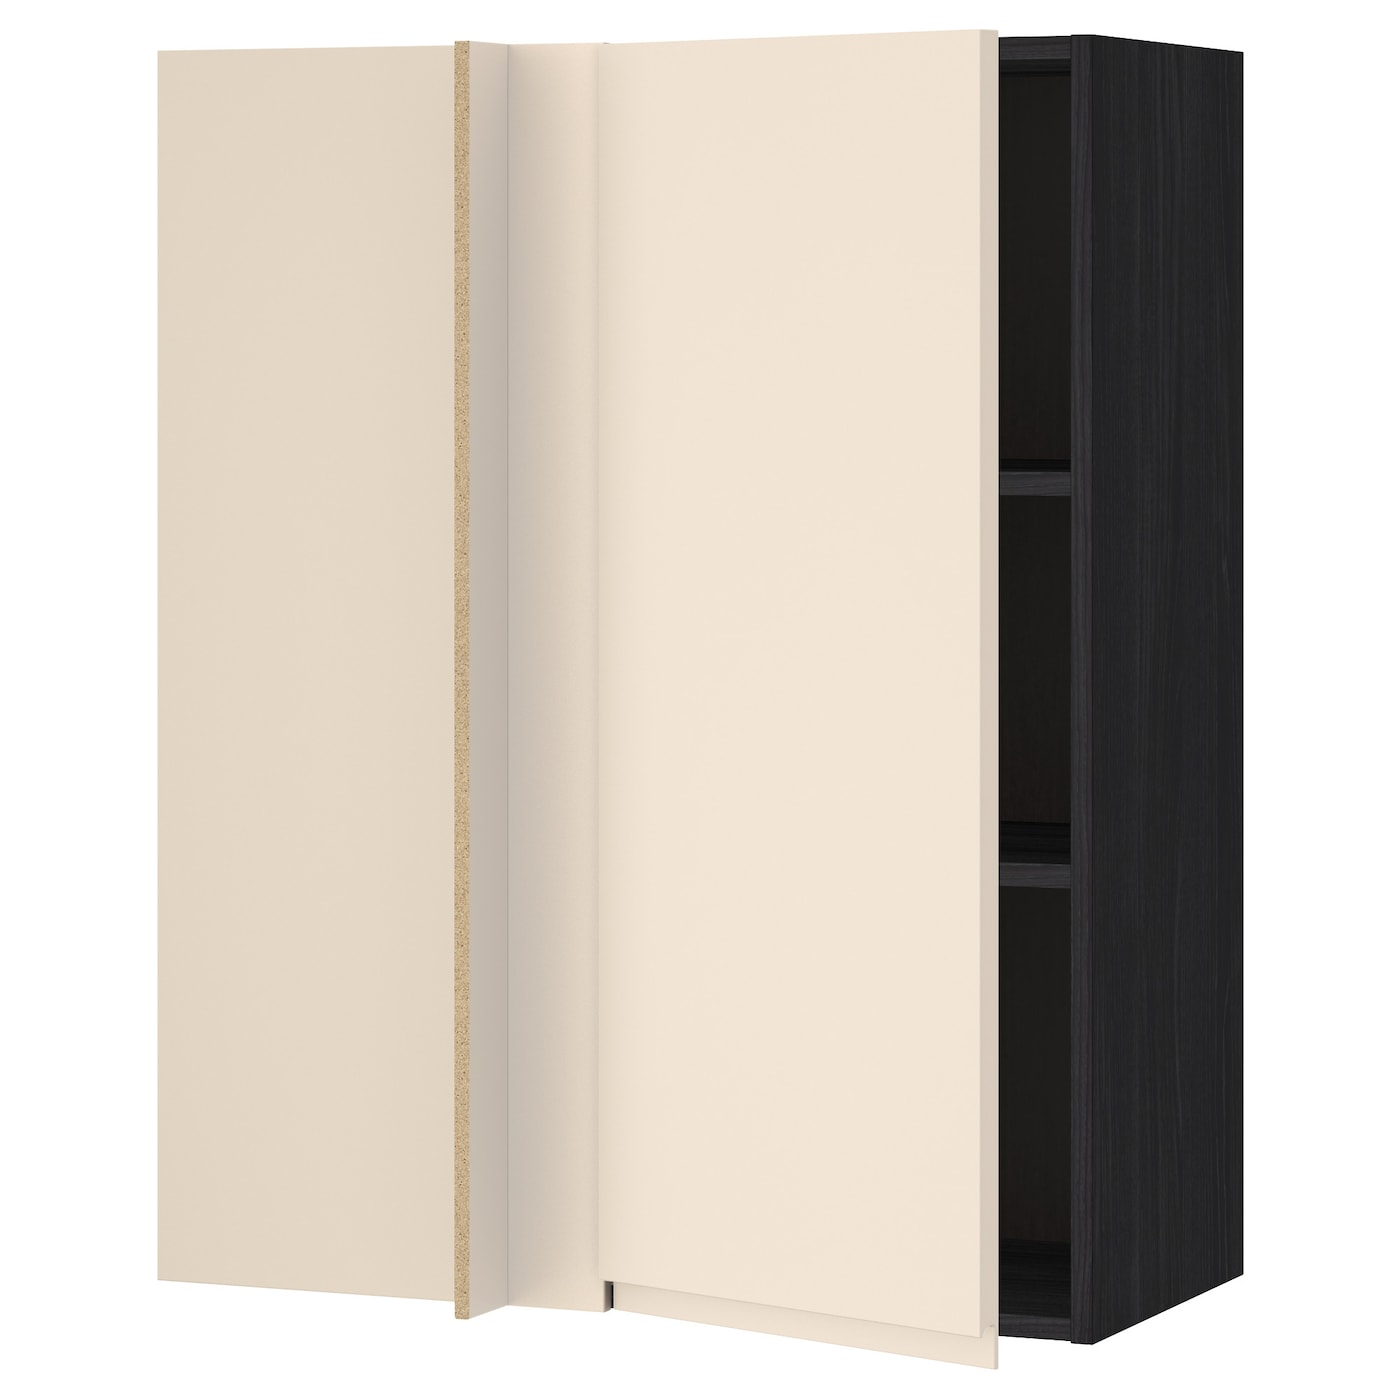 Metod Wall Cabinet With Shelves: METOD Corner Wall Cabinet With Shelves Black/voxtorp Light